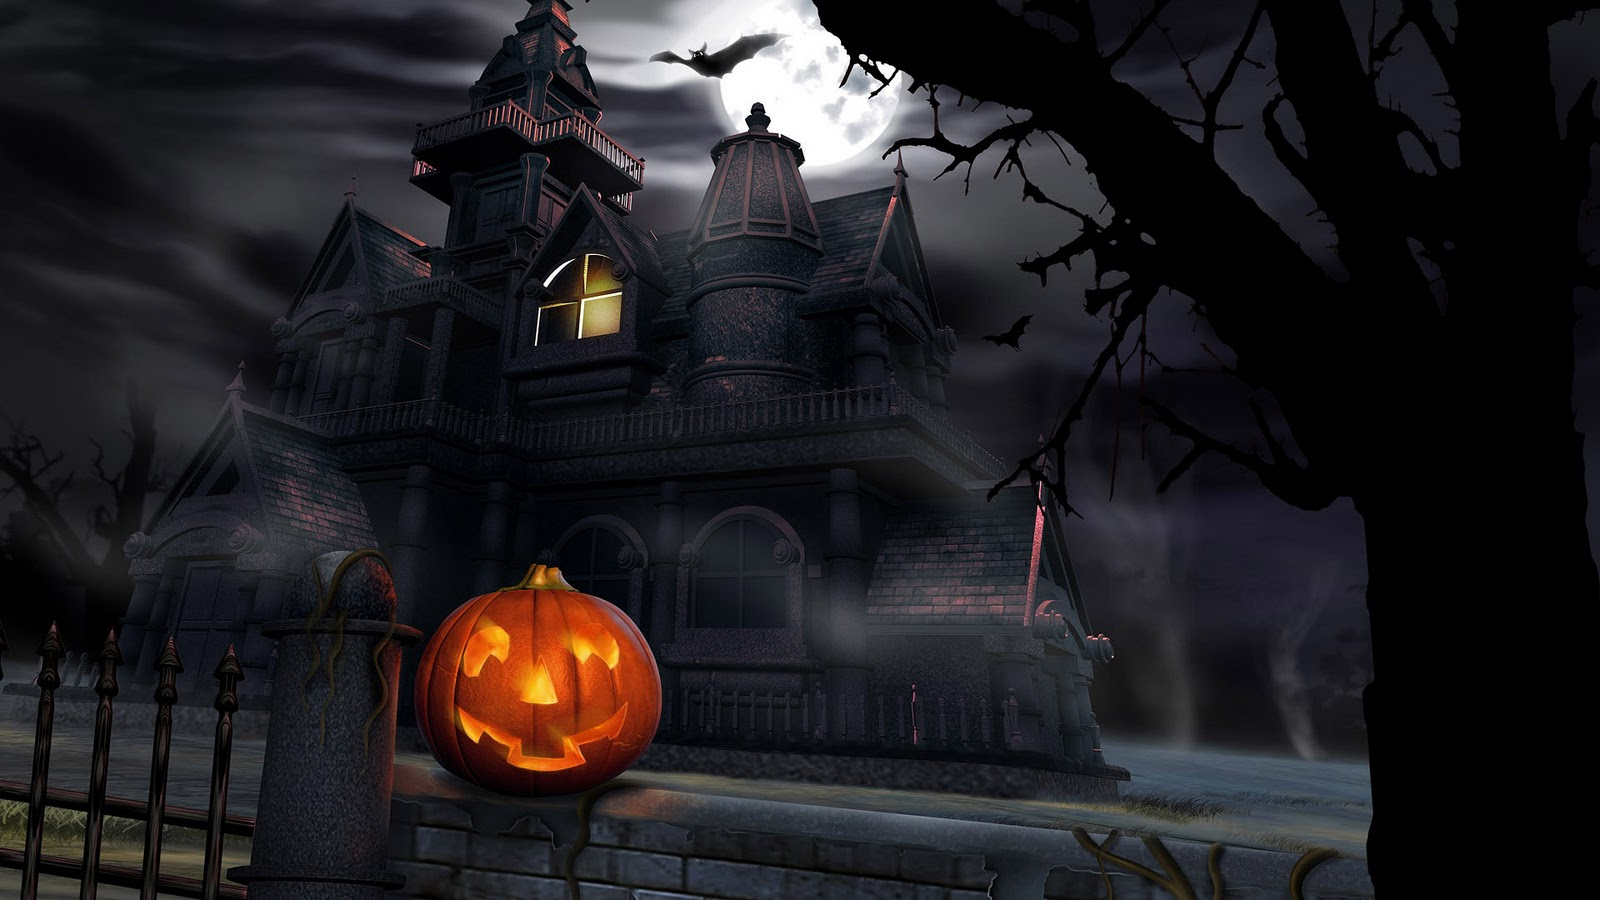 halloween scary animated desktop wallpaper | mega wallpapers